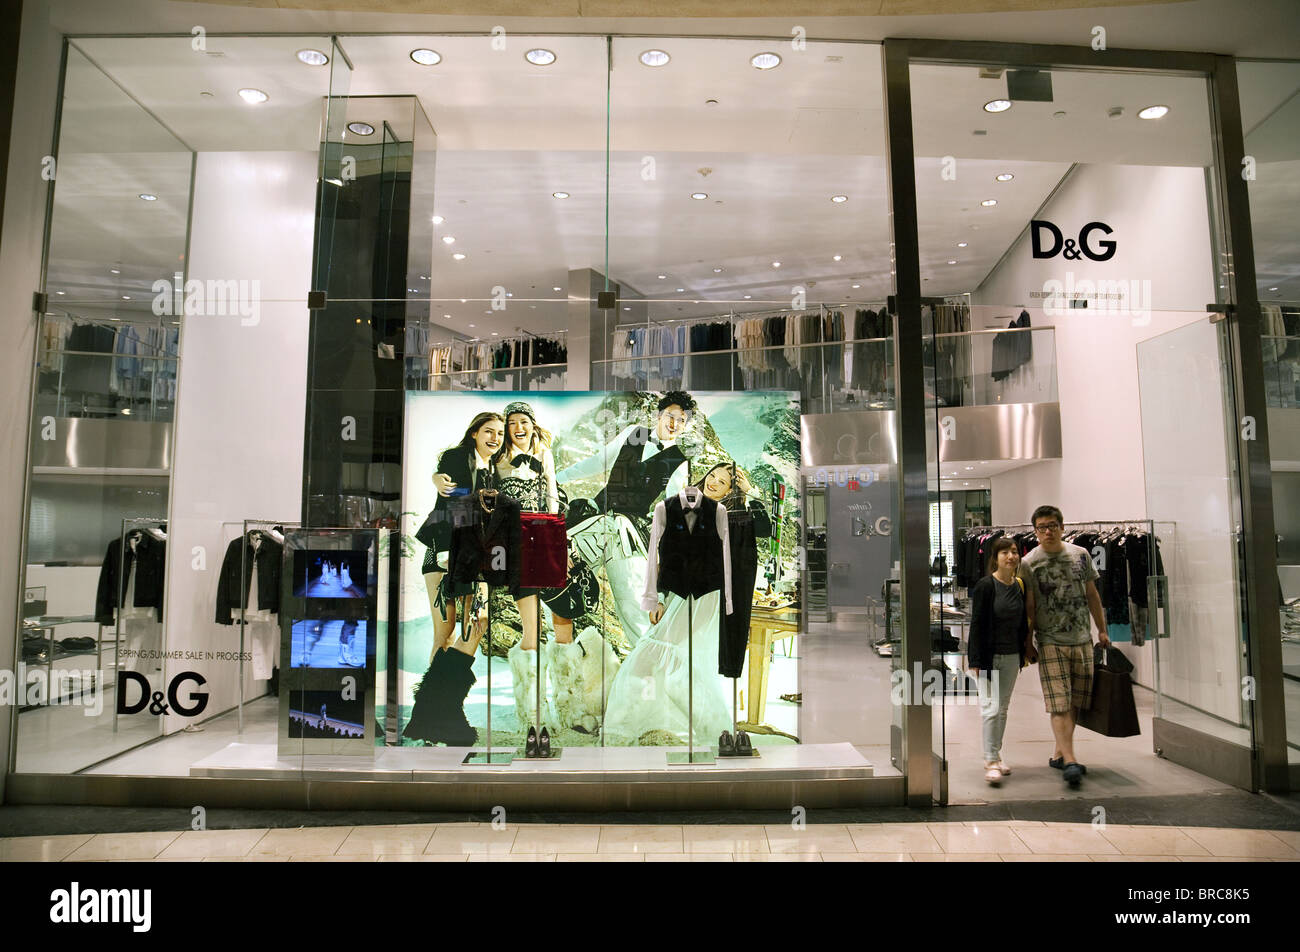 People shopping at the Dolce & Gabbana store, the Forum Shops, Caesars Palace Hotel, Las Vegas USA - Stock Image